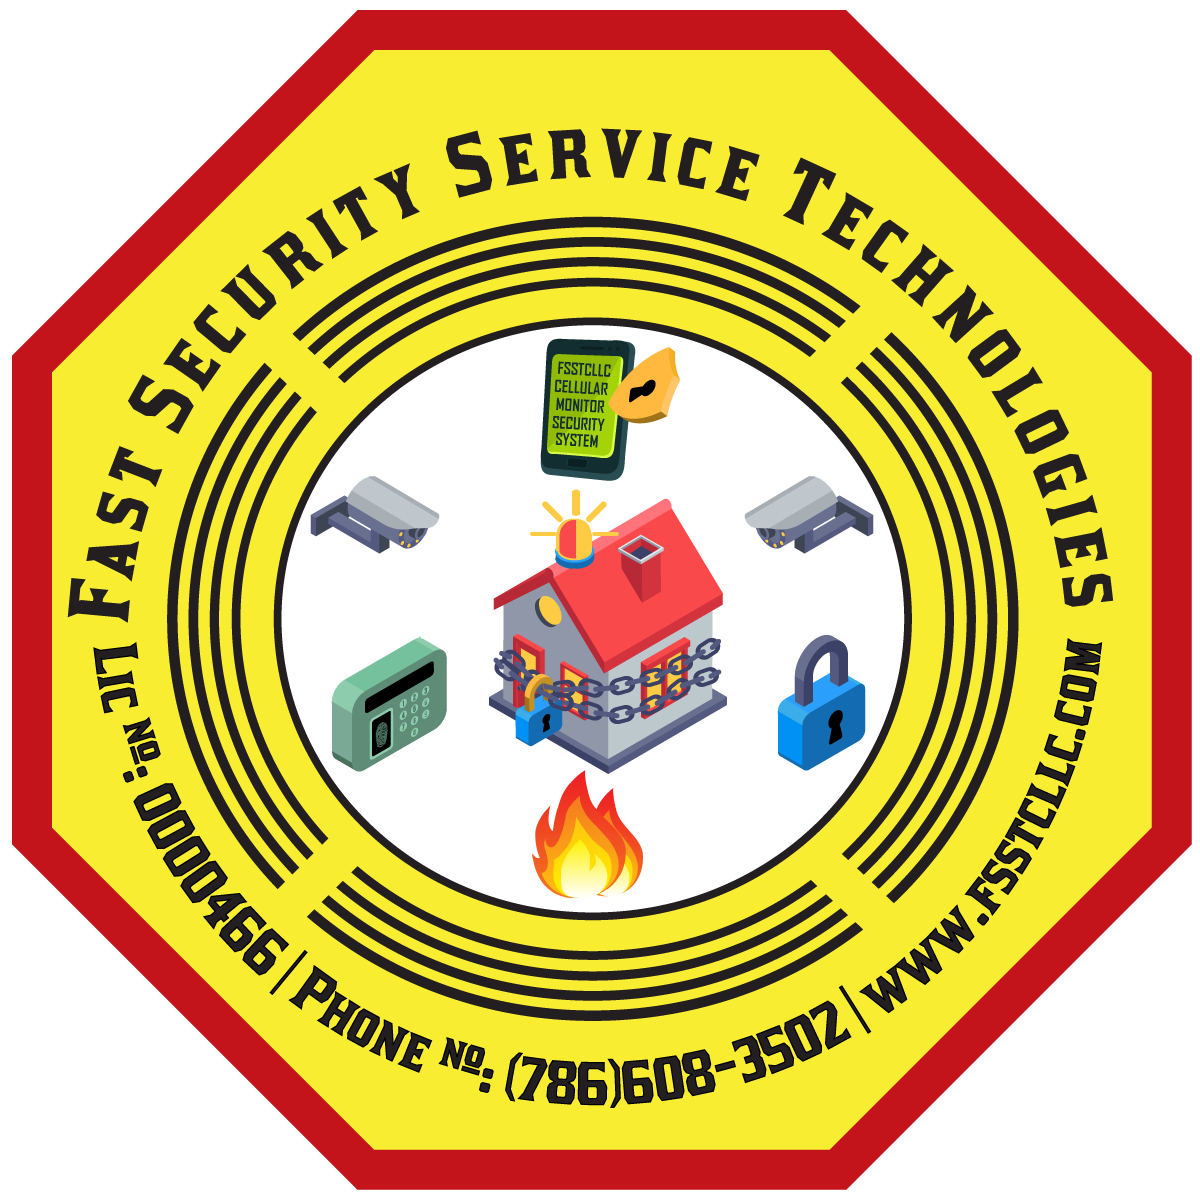 Fast Security Service Technologies - Powered by Barrett Information Technologies, Inc.